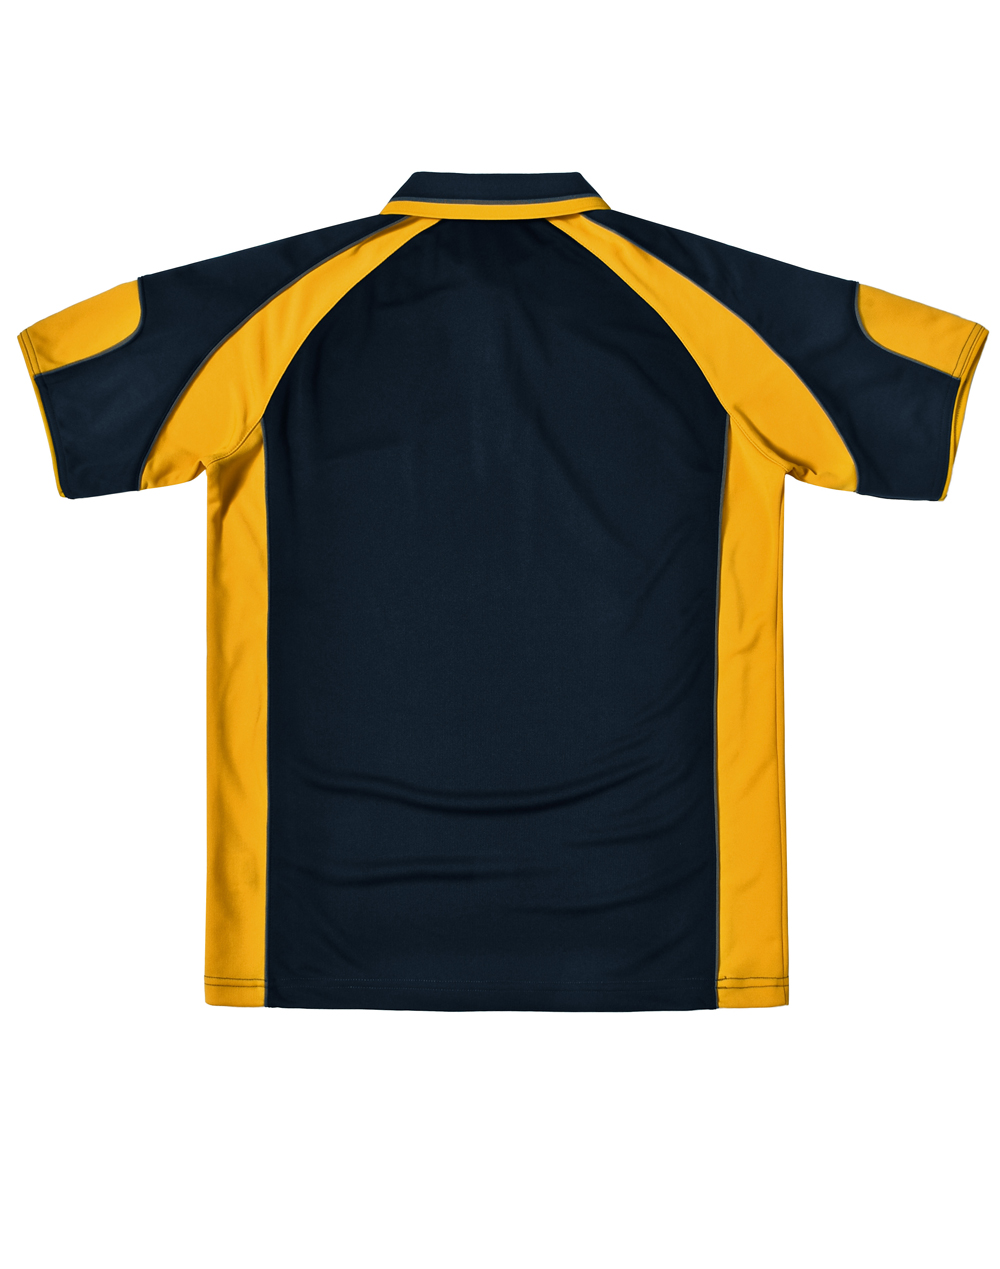 https://s3-ap-southeast-1.amazonaws.com/ws-imgs/POLOSHIRTS/PS61_NavyGold_Back.jpg